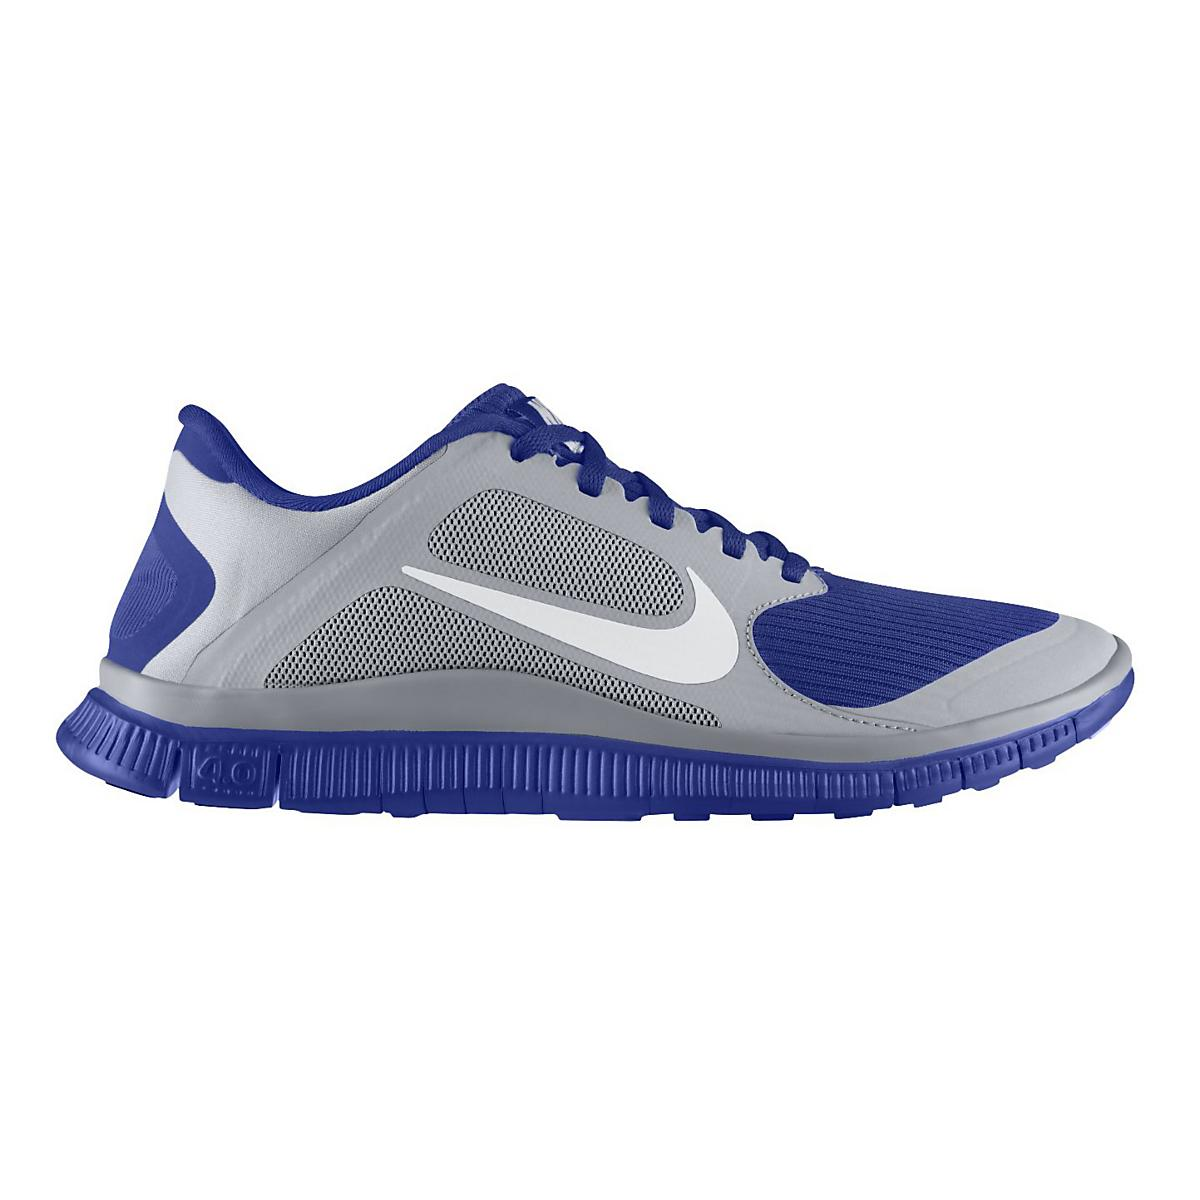 Cheap Nike Free Trainer 3.0 V3 CR7 : Footwear : Soccer Bible